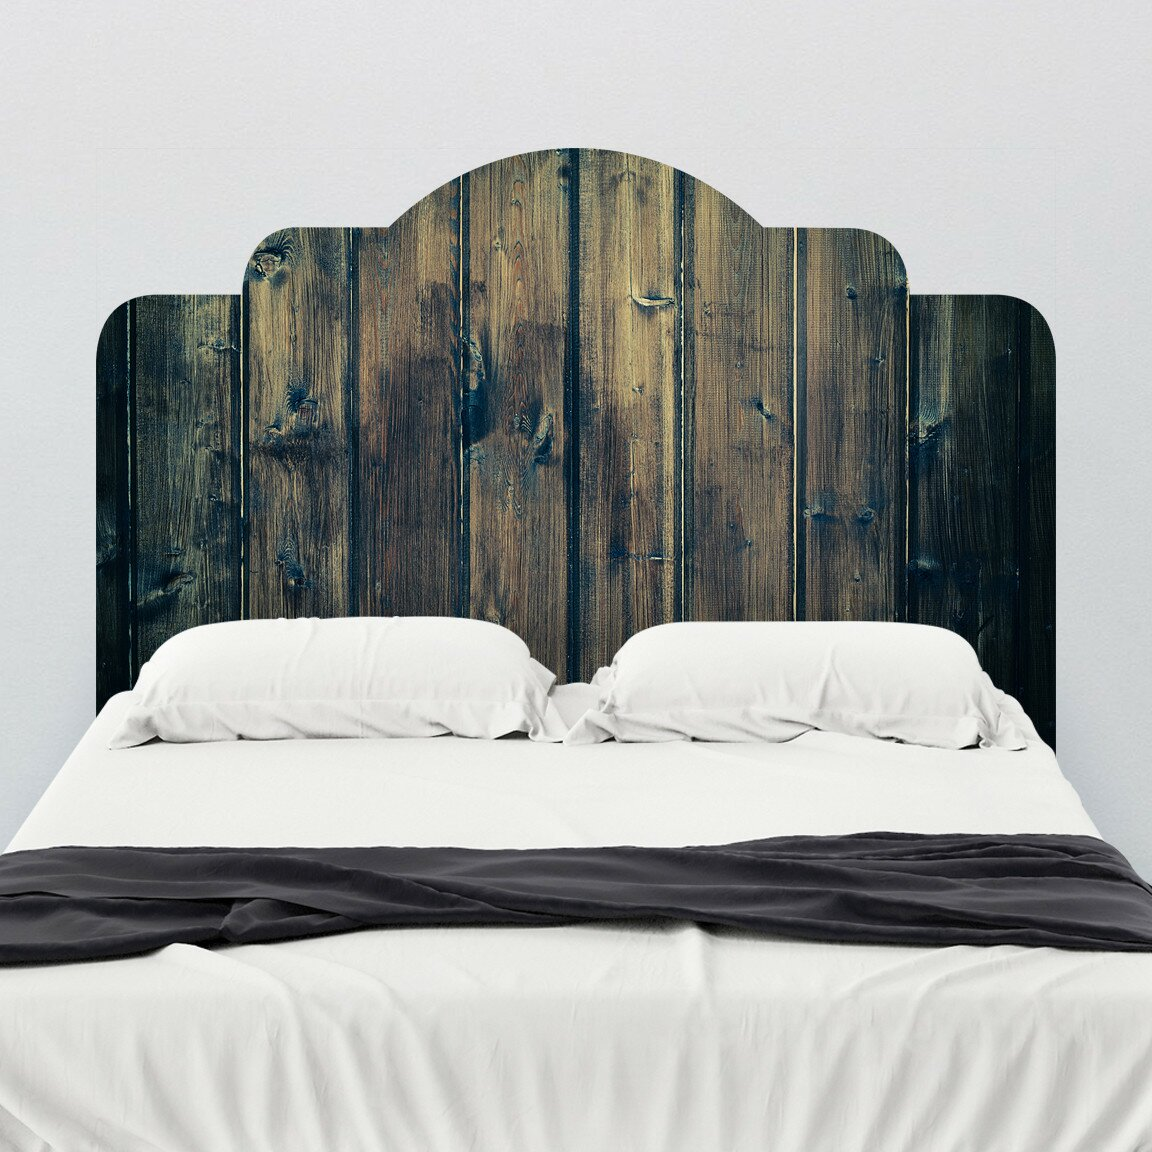 walls need love stained wood adhesive headboard wall mural. Black Bedroom Furniture Sets. Home Design Ideas